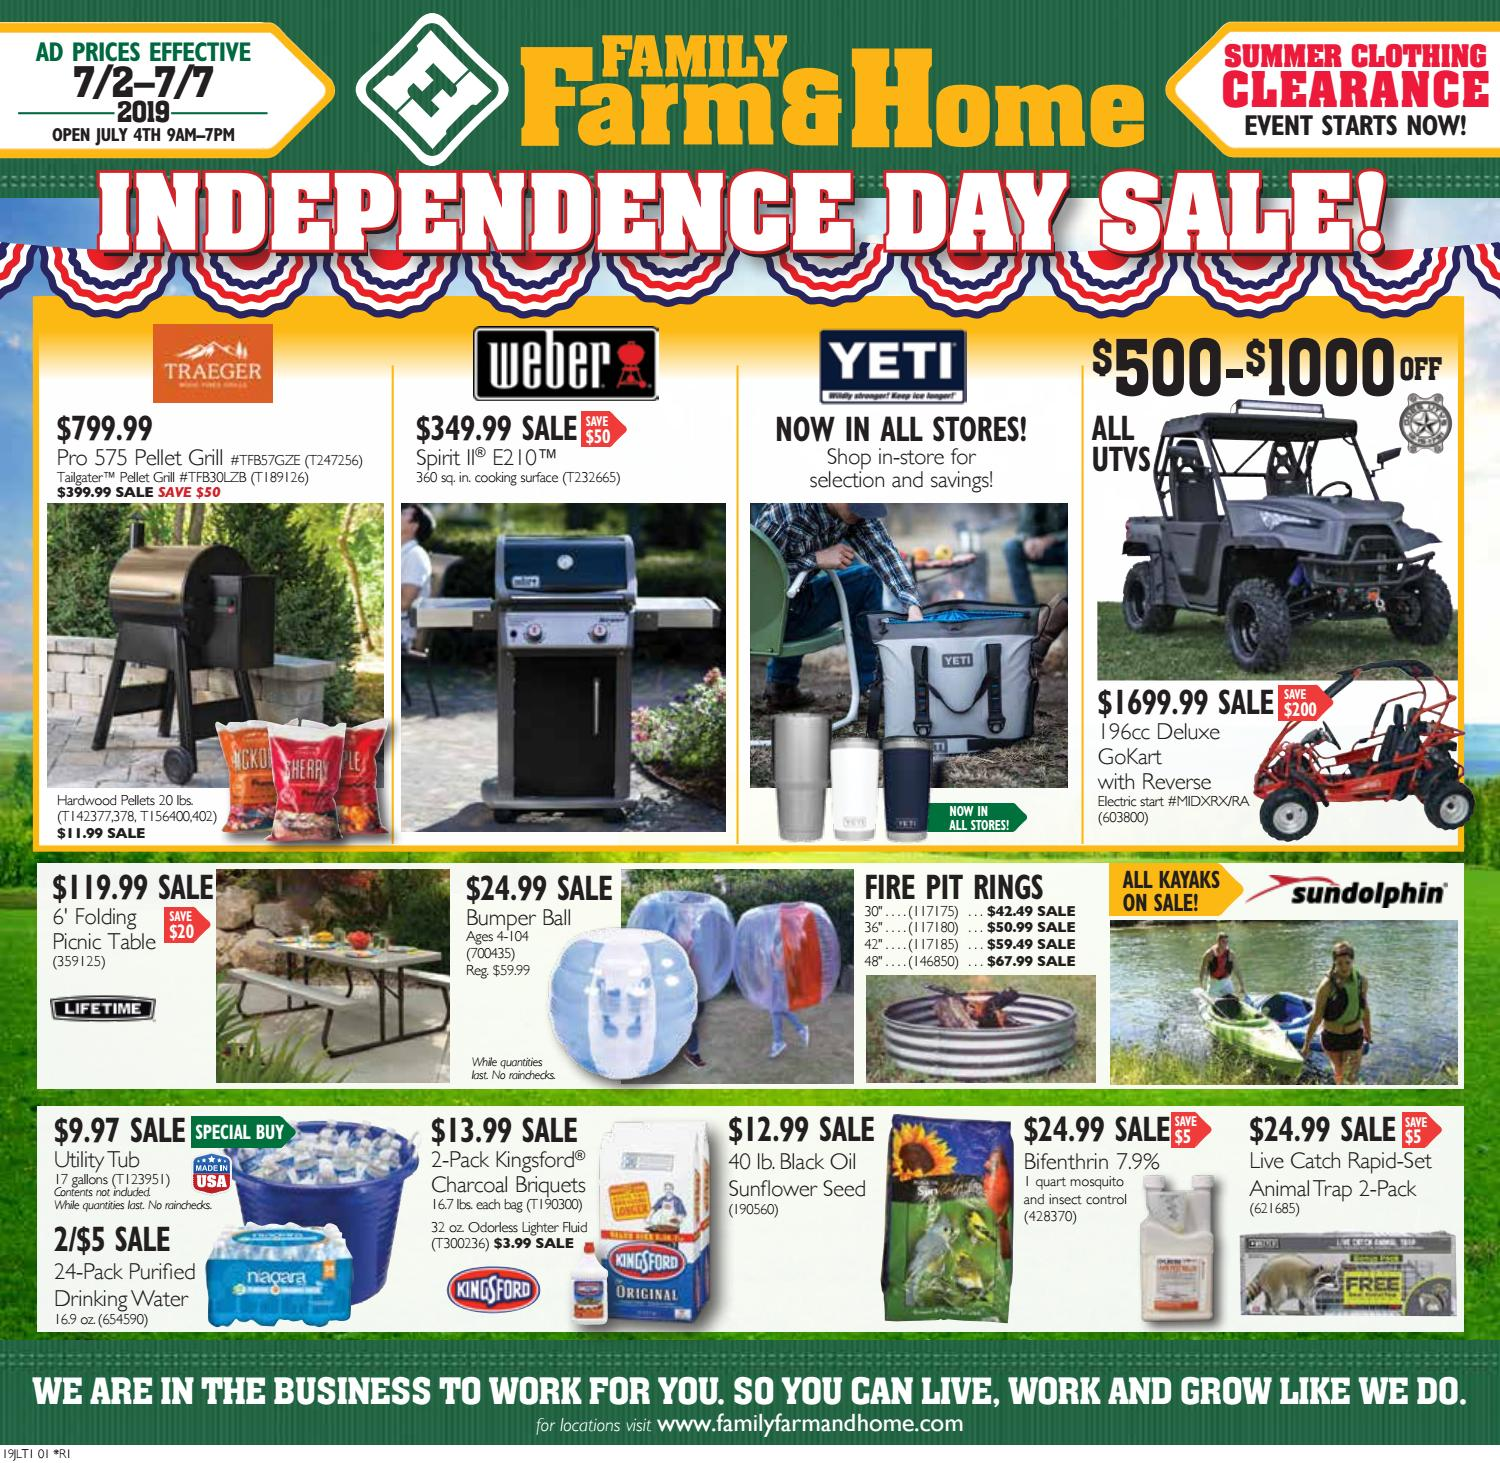 Family Farm & Home 19JLT1 Ad (Effective July 2-7, 2019) by